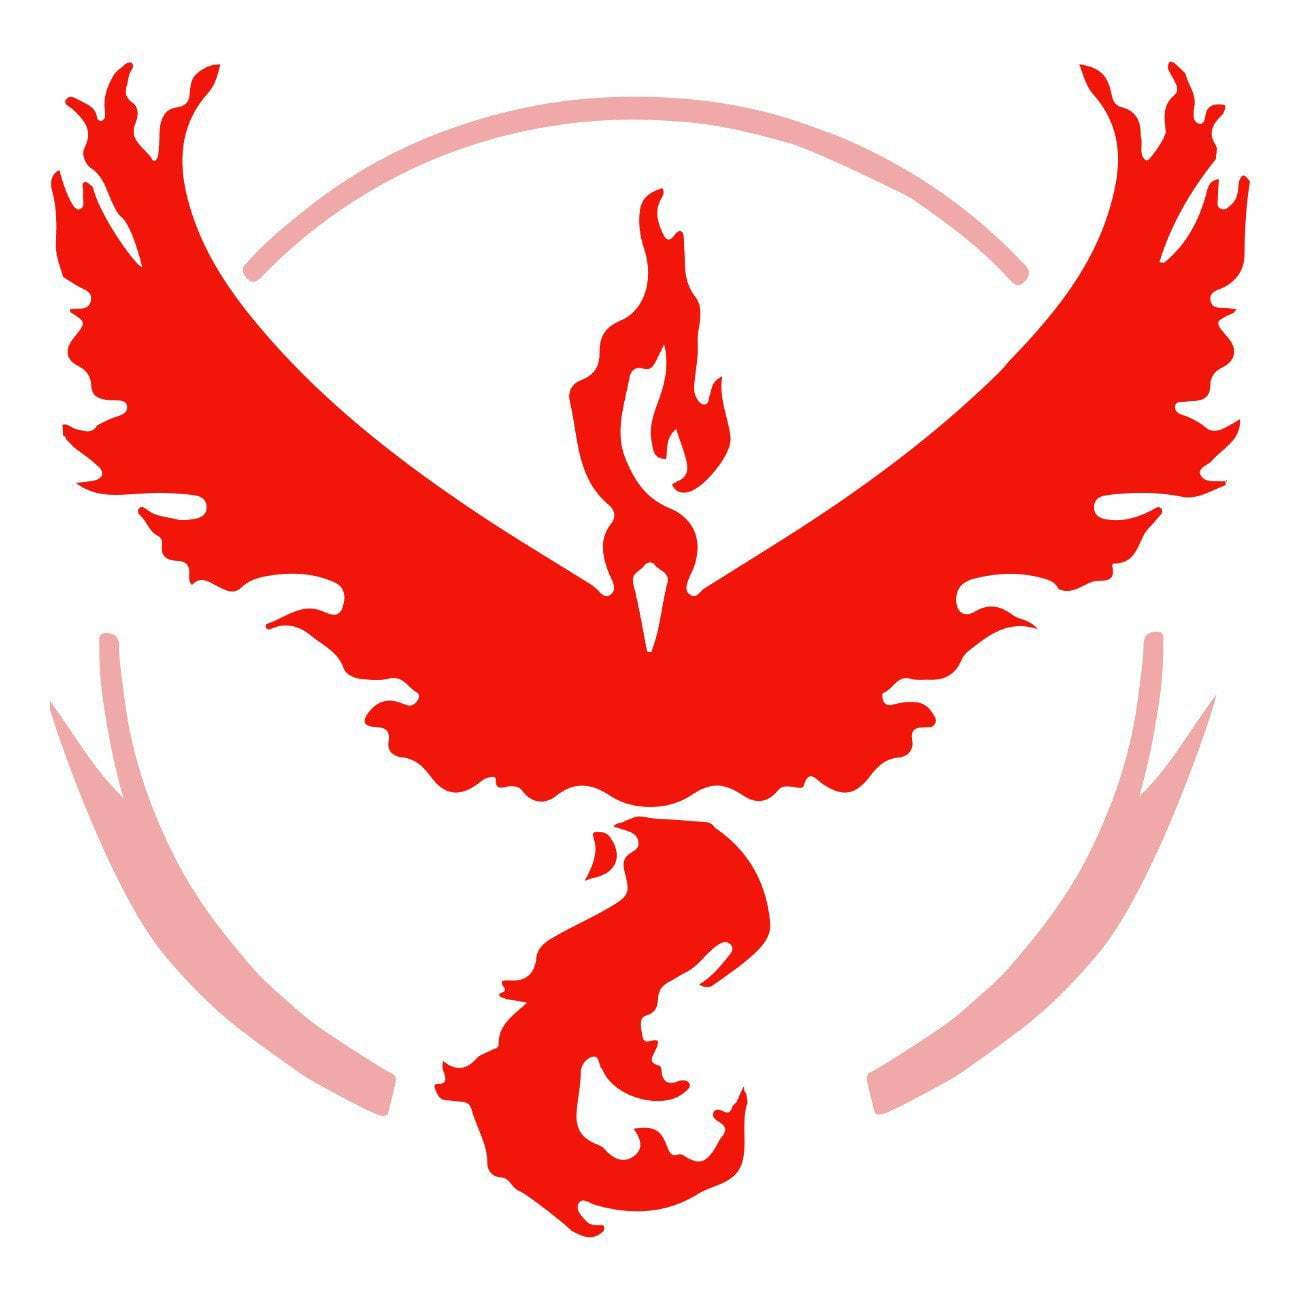 Red Team Valor Pokemon GO Decal Graphic Vinyl Die Cut Stickers Large 4 x 4""